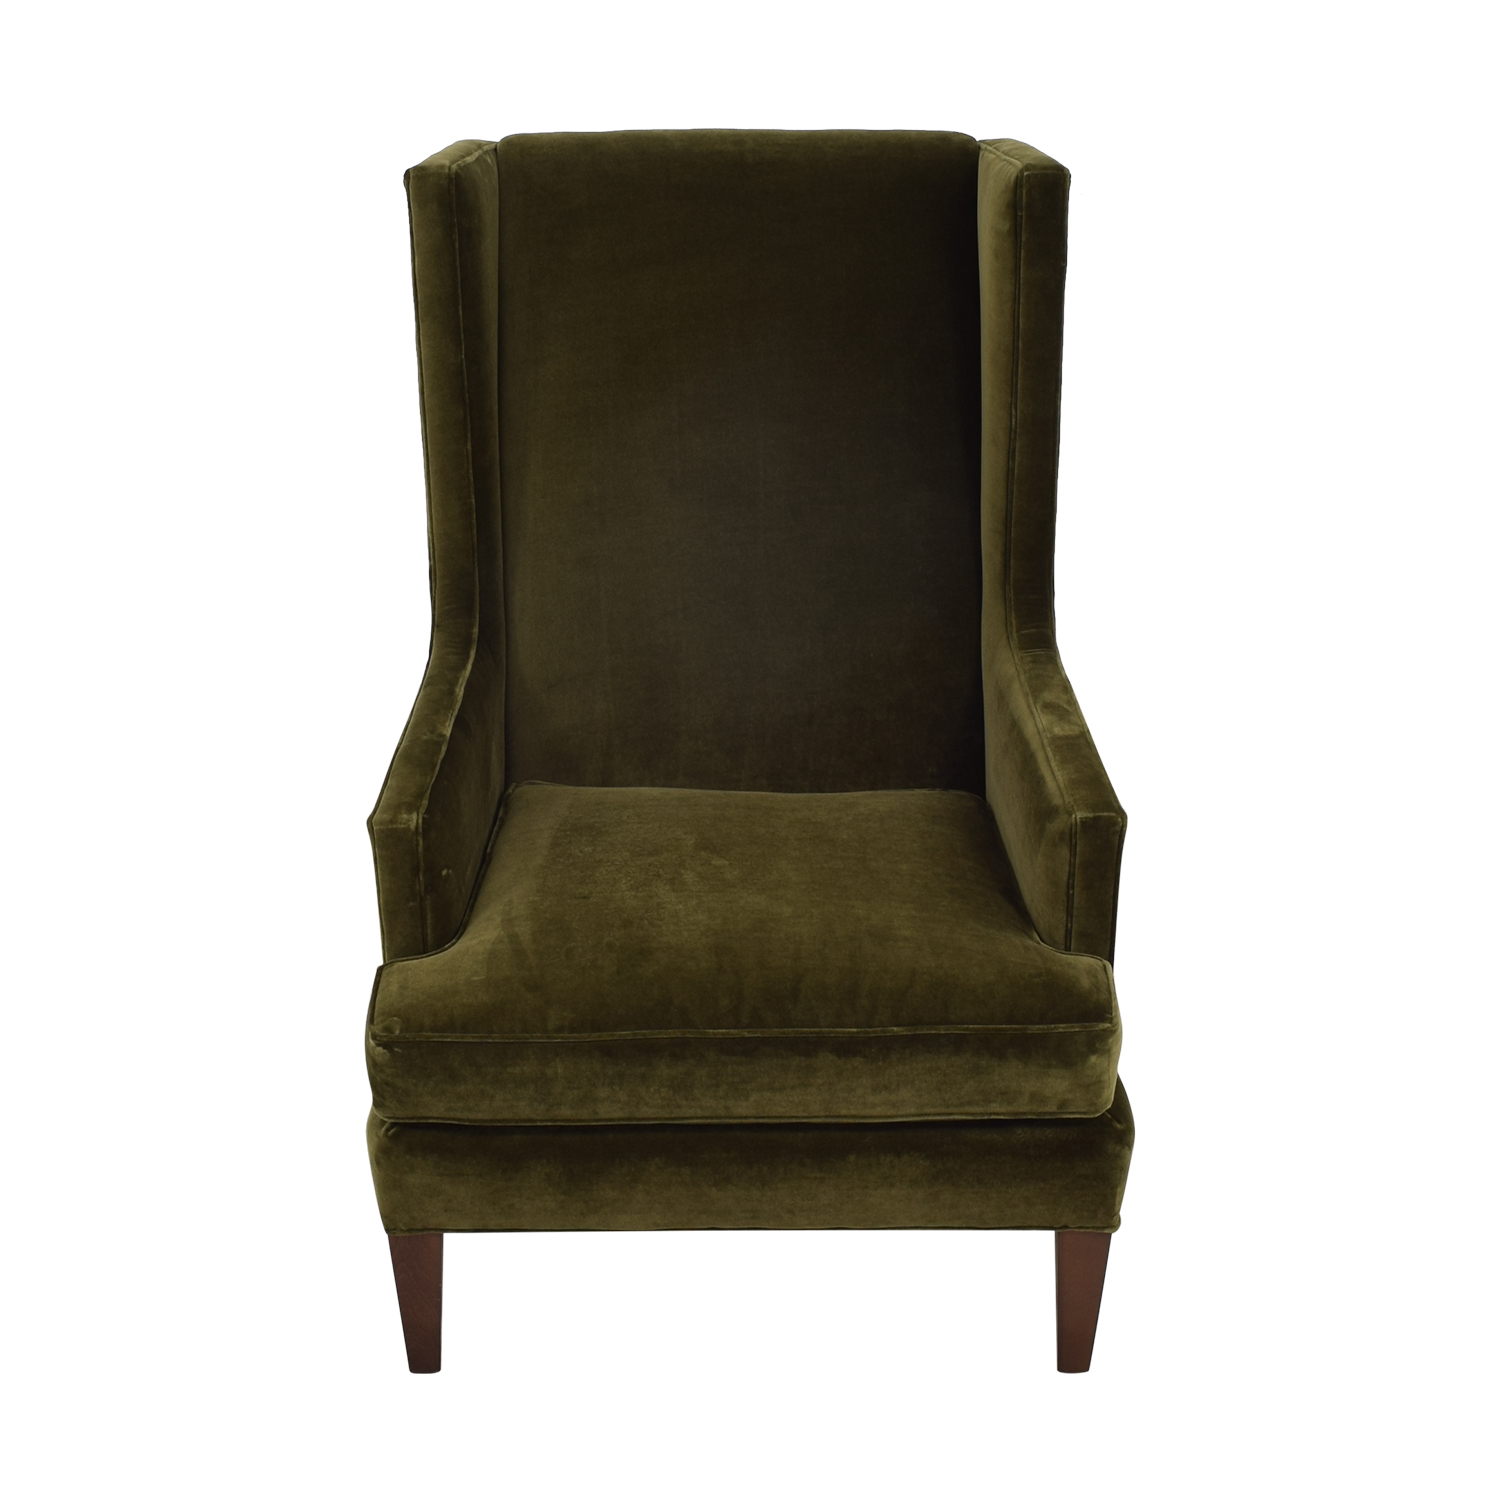 Crate & Barrel Crate & Barrel Luxe Wingback Chair Chairs